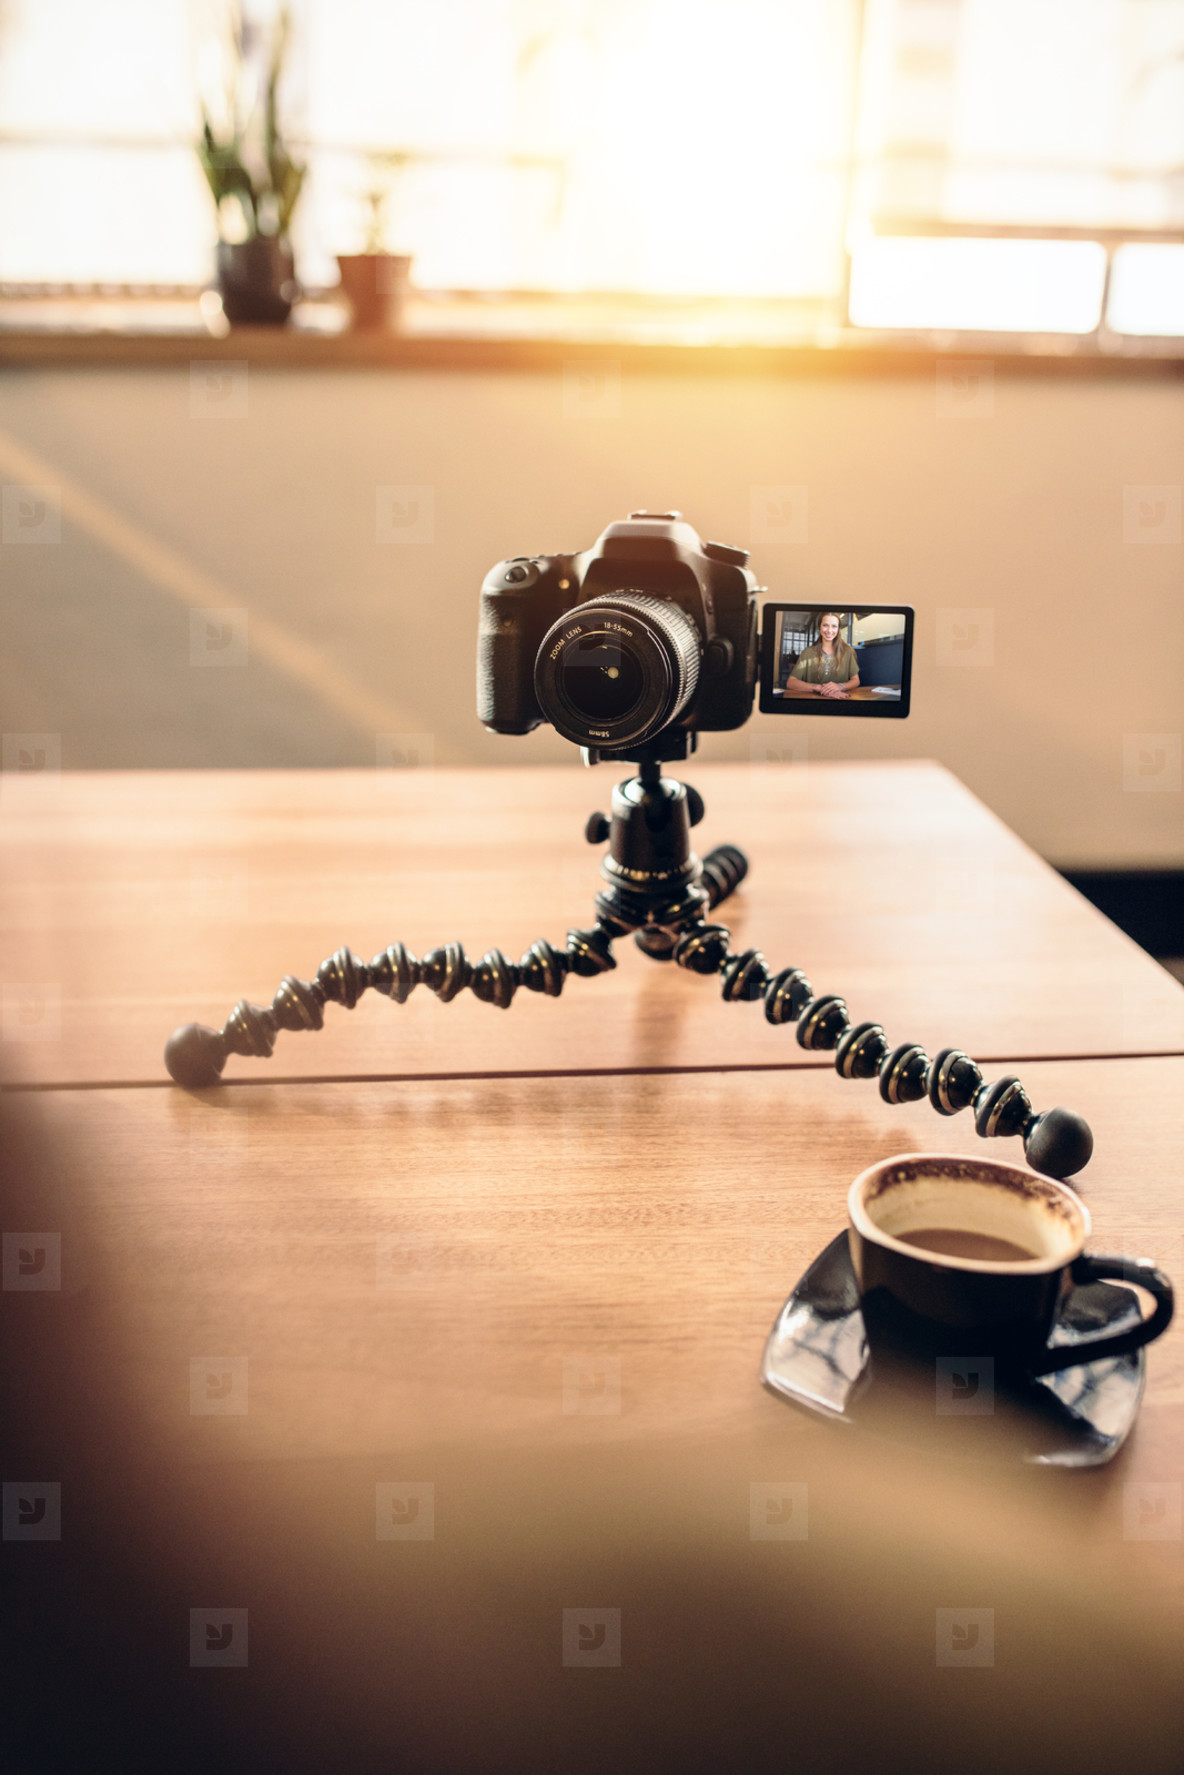 Desk of a photographer with coffee and tripod mounted digital ca